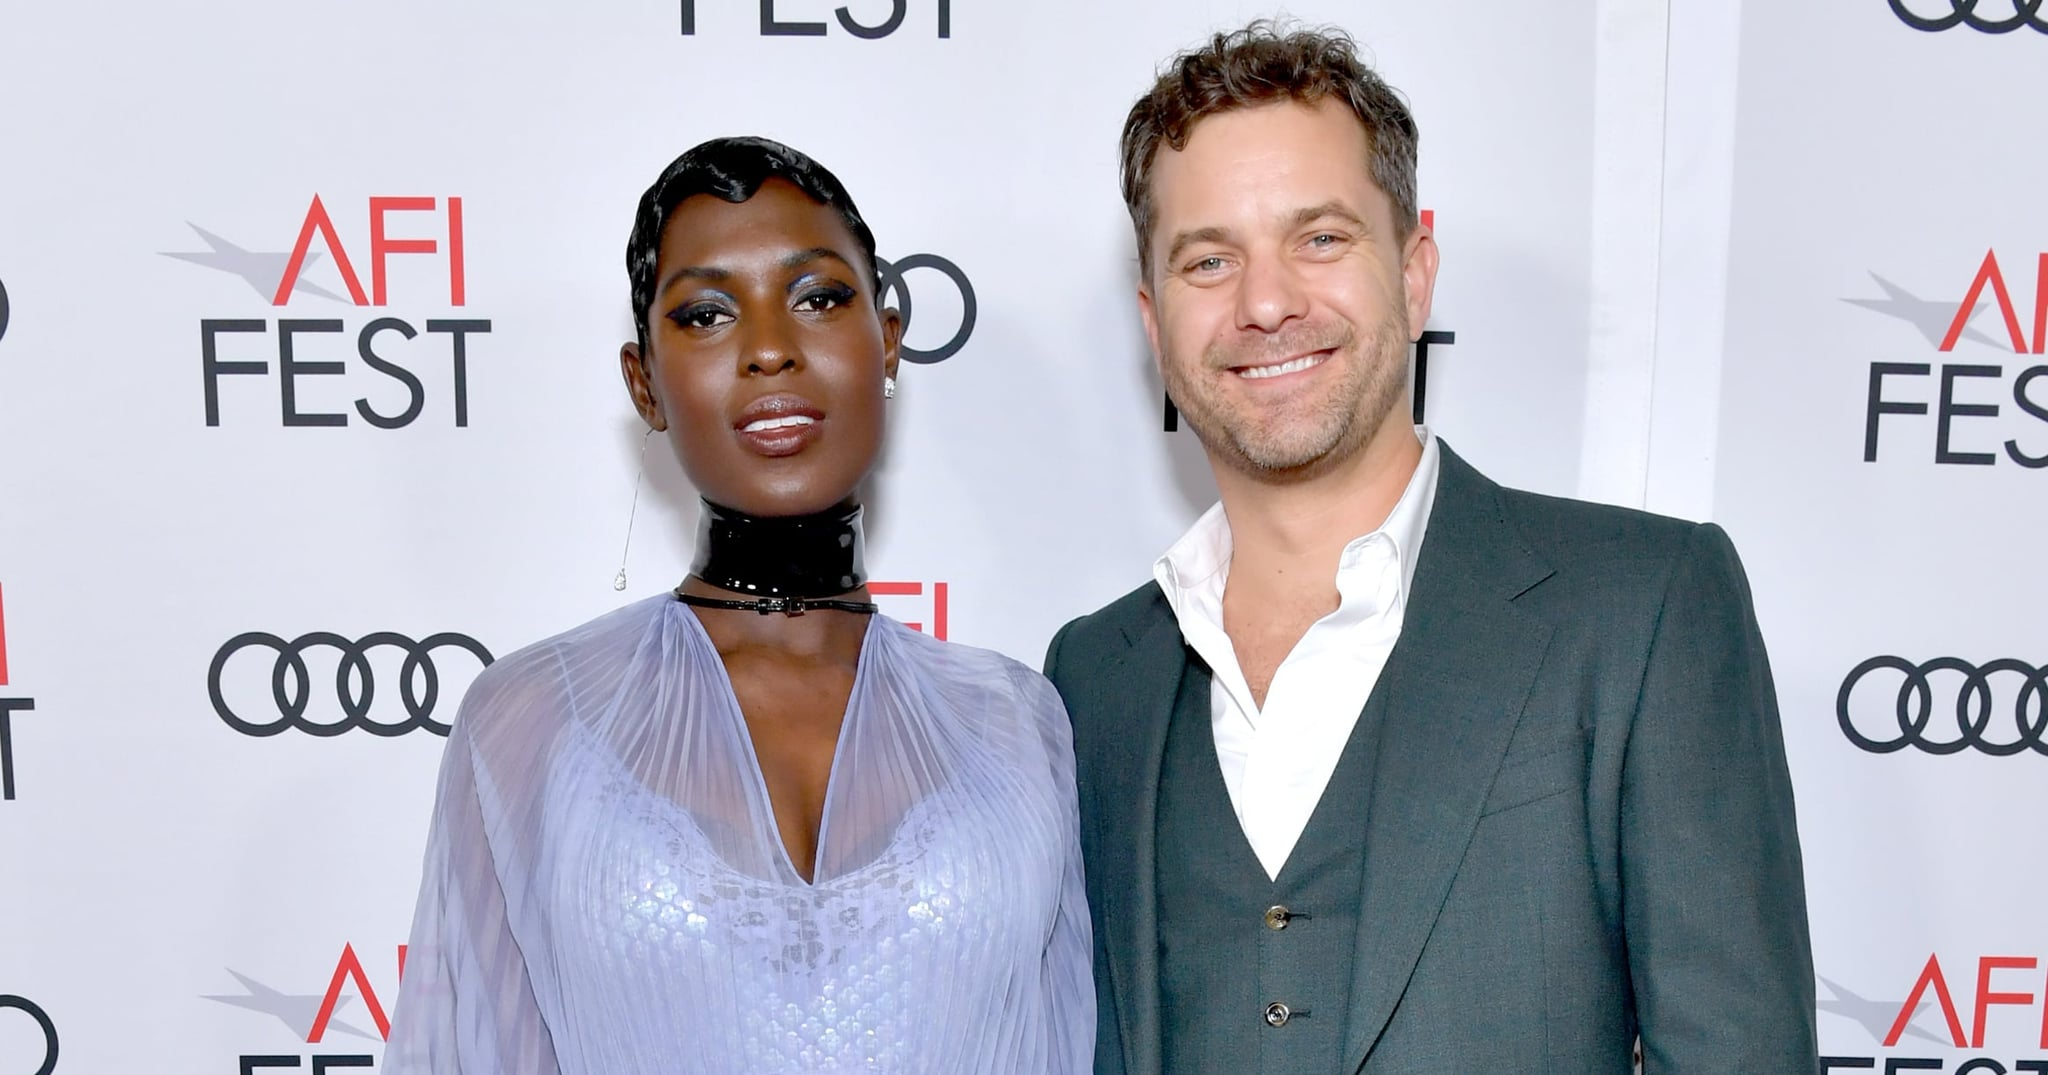 Joshua Jackson and Jodie Turner-Smith Make Their Red Carpet Debut as a Couple